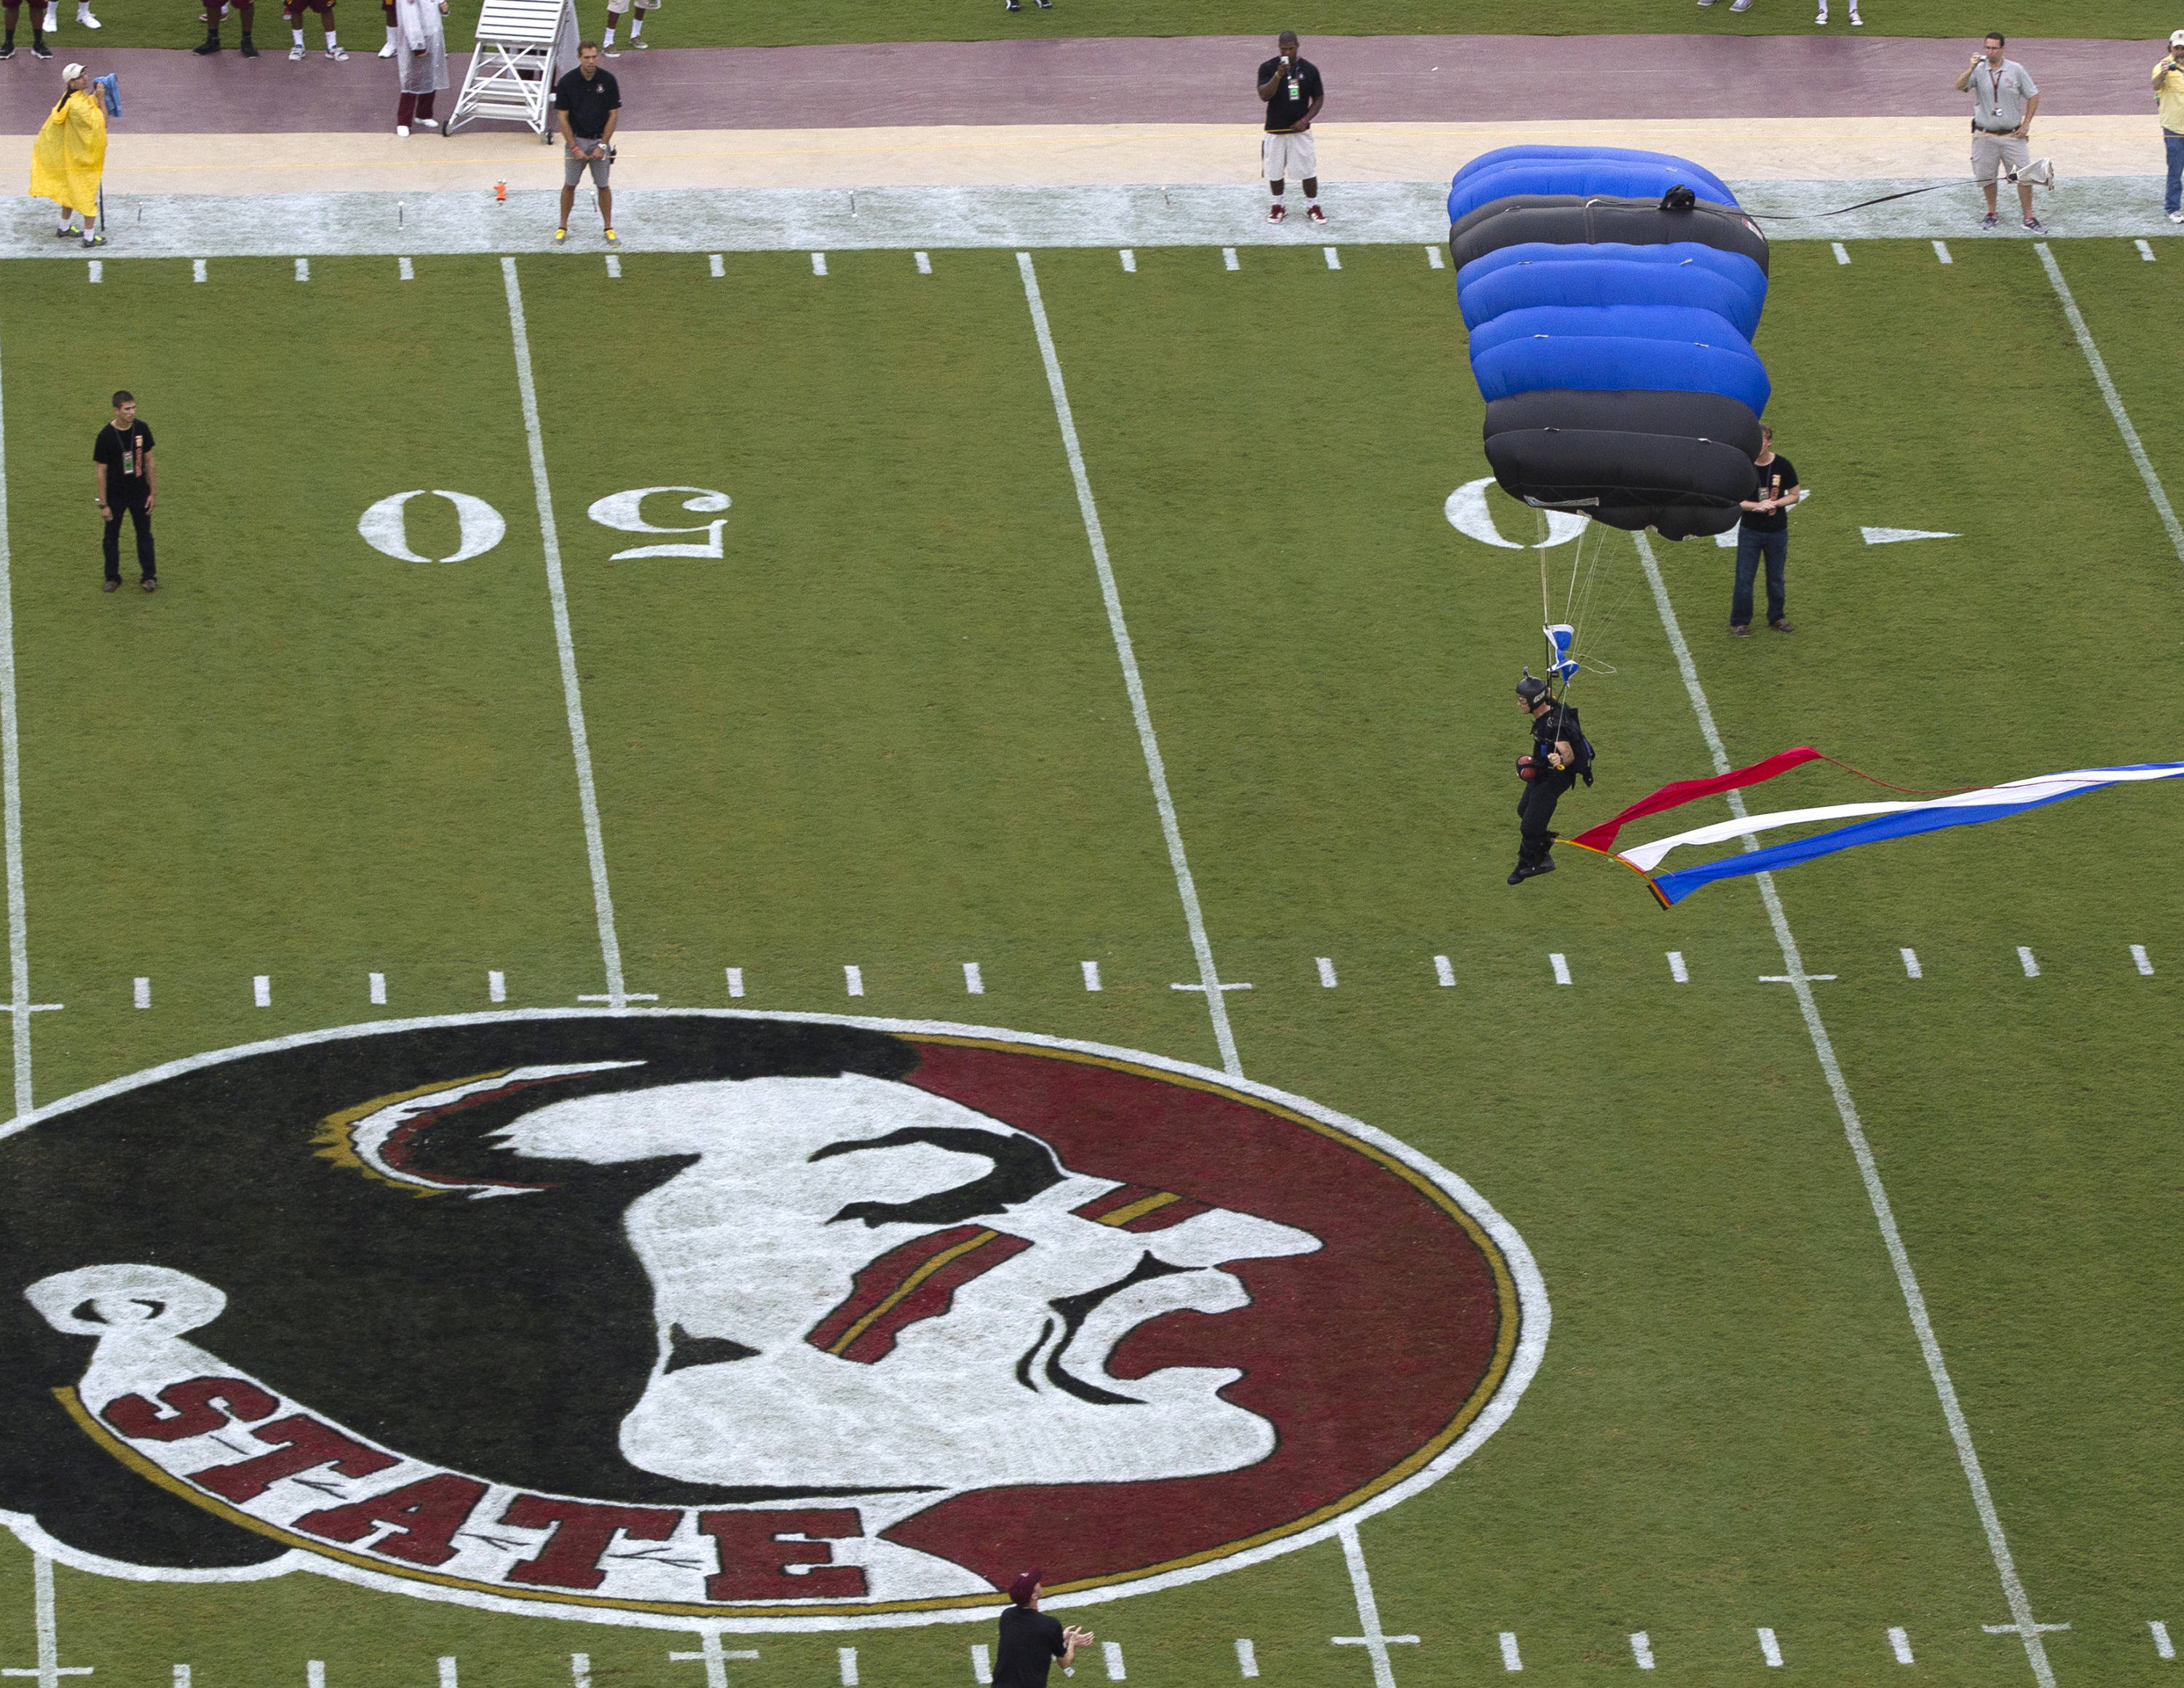 Special Operations Chuters from Tampa, FSU vs Bethune-Cookman,  9-21-13, (Photo by Steve Musco)